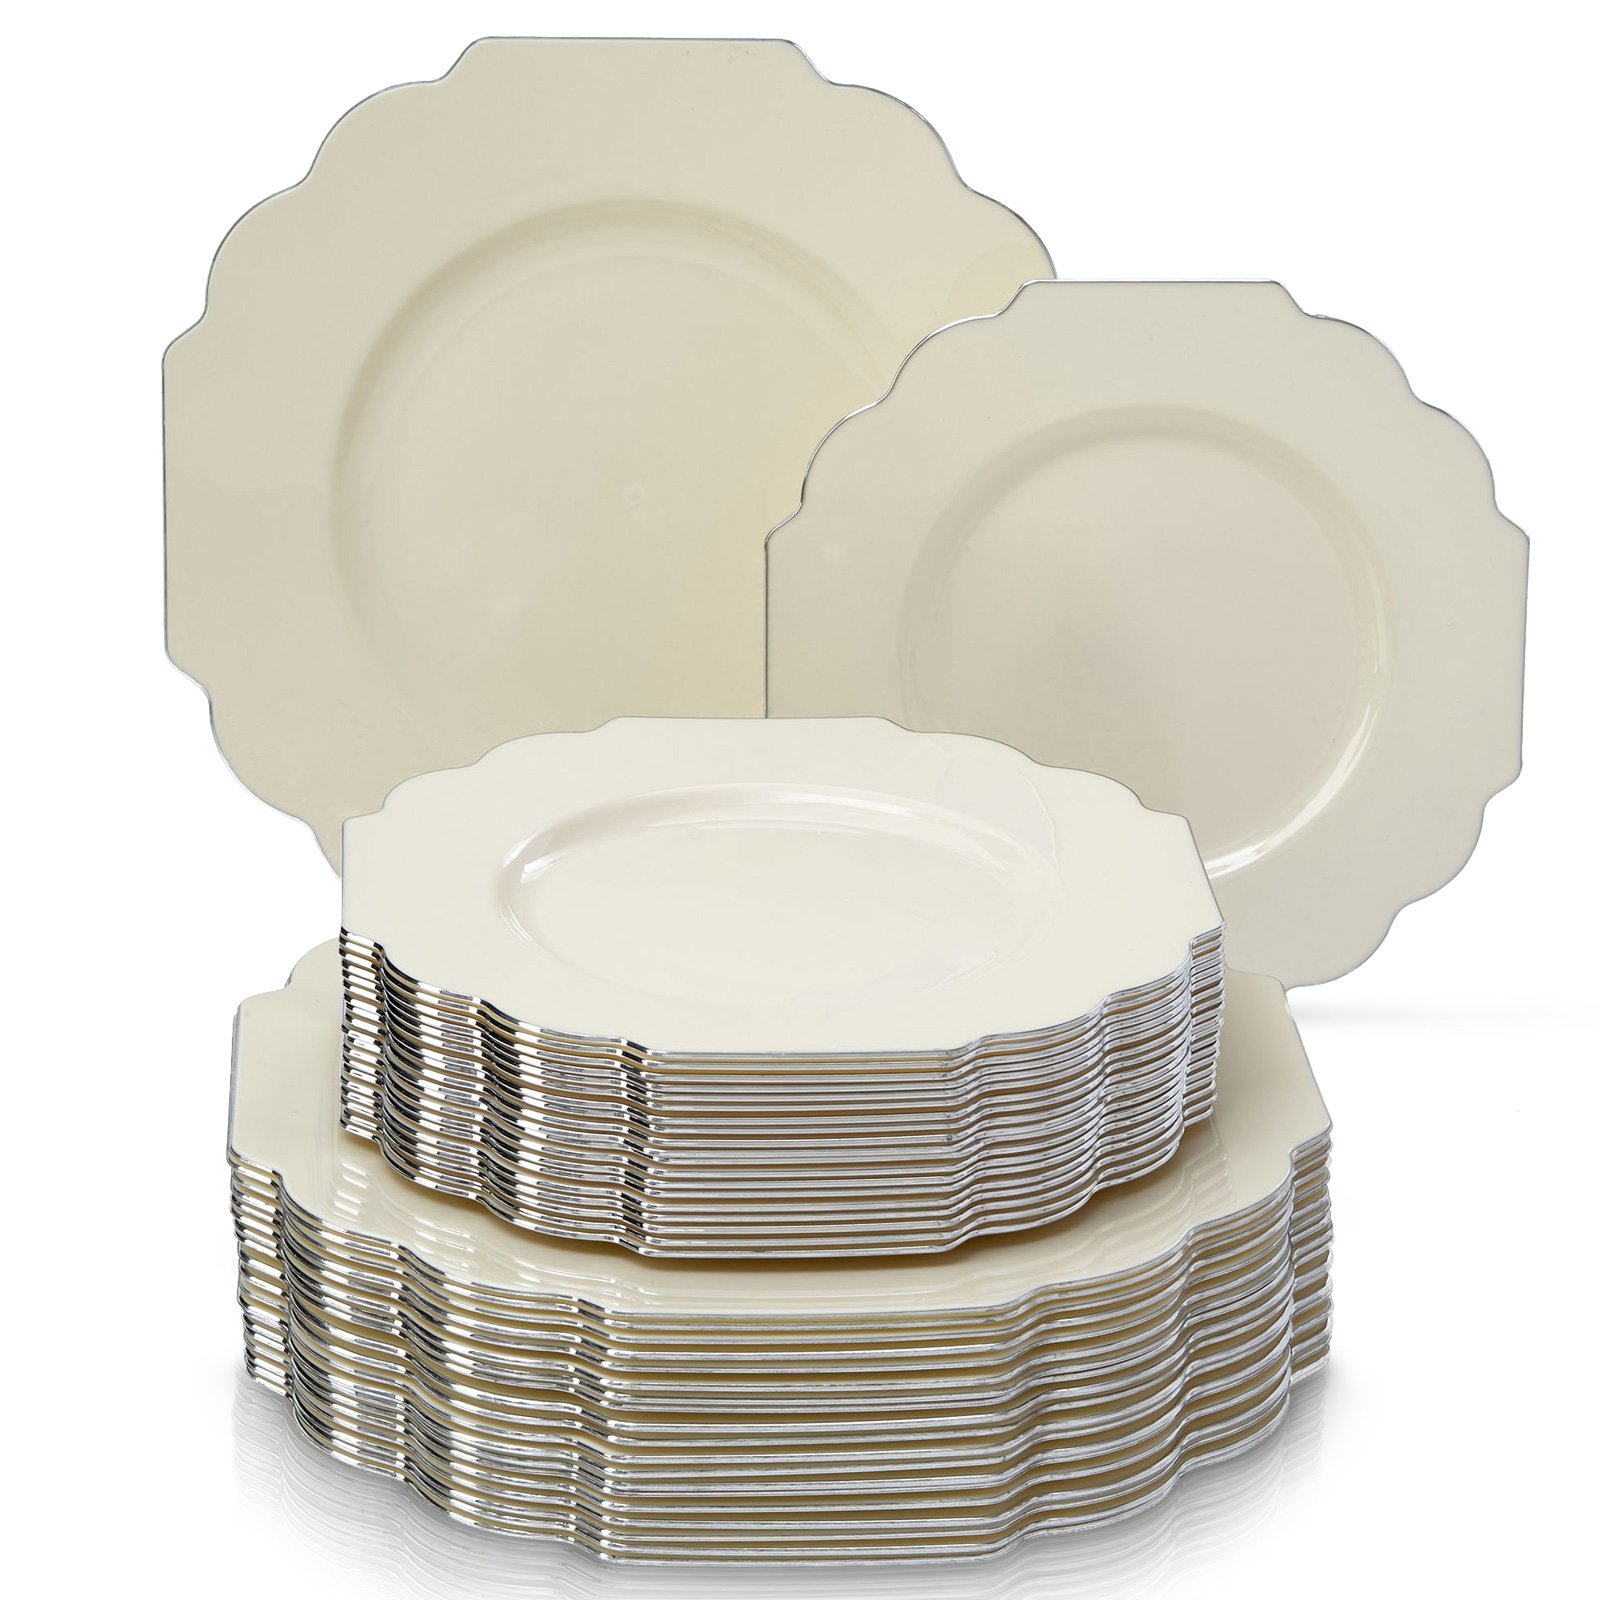 DELUXE DISPOSABLE 24 PC DINNERWARE SET | 12 Dinner Plates and 12 Dessert Plates | Durable Plastic Dishes | Elegant Fine China Look | for Upscale Wedding and Dining (Baroque-Ivory)